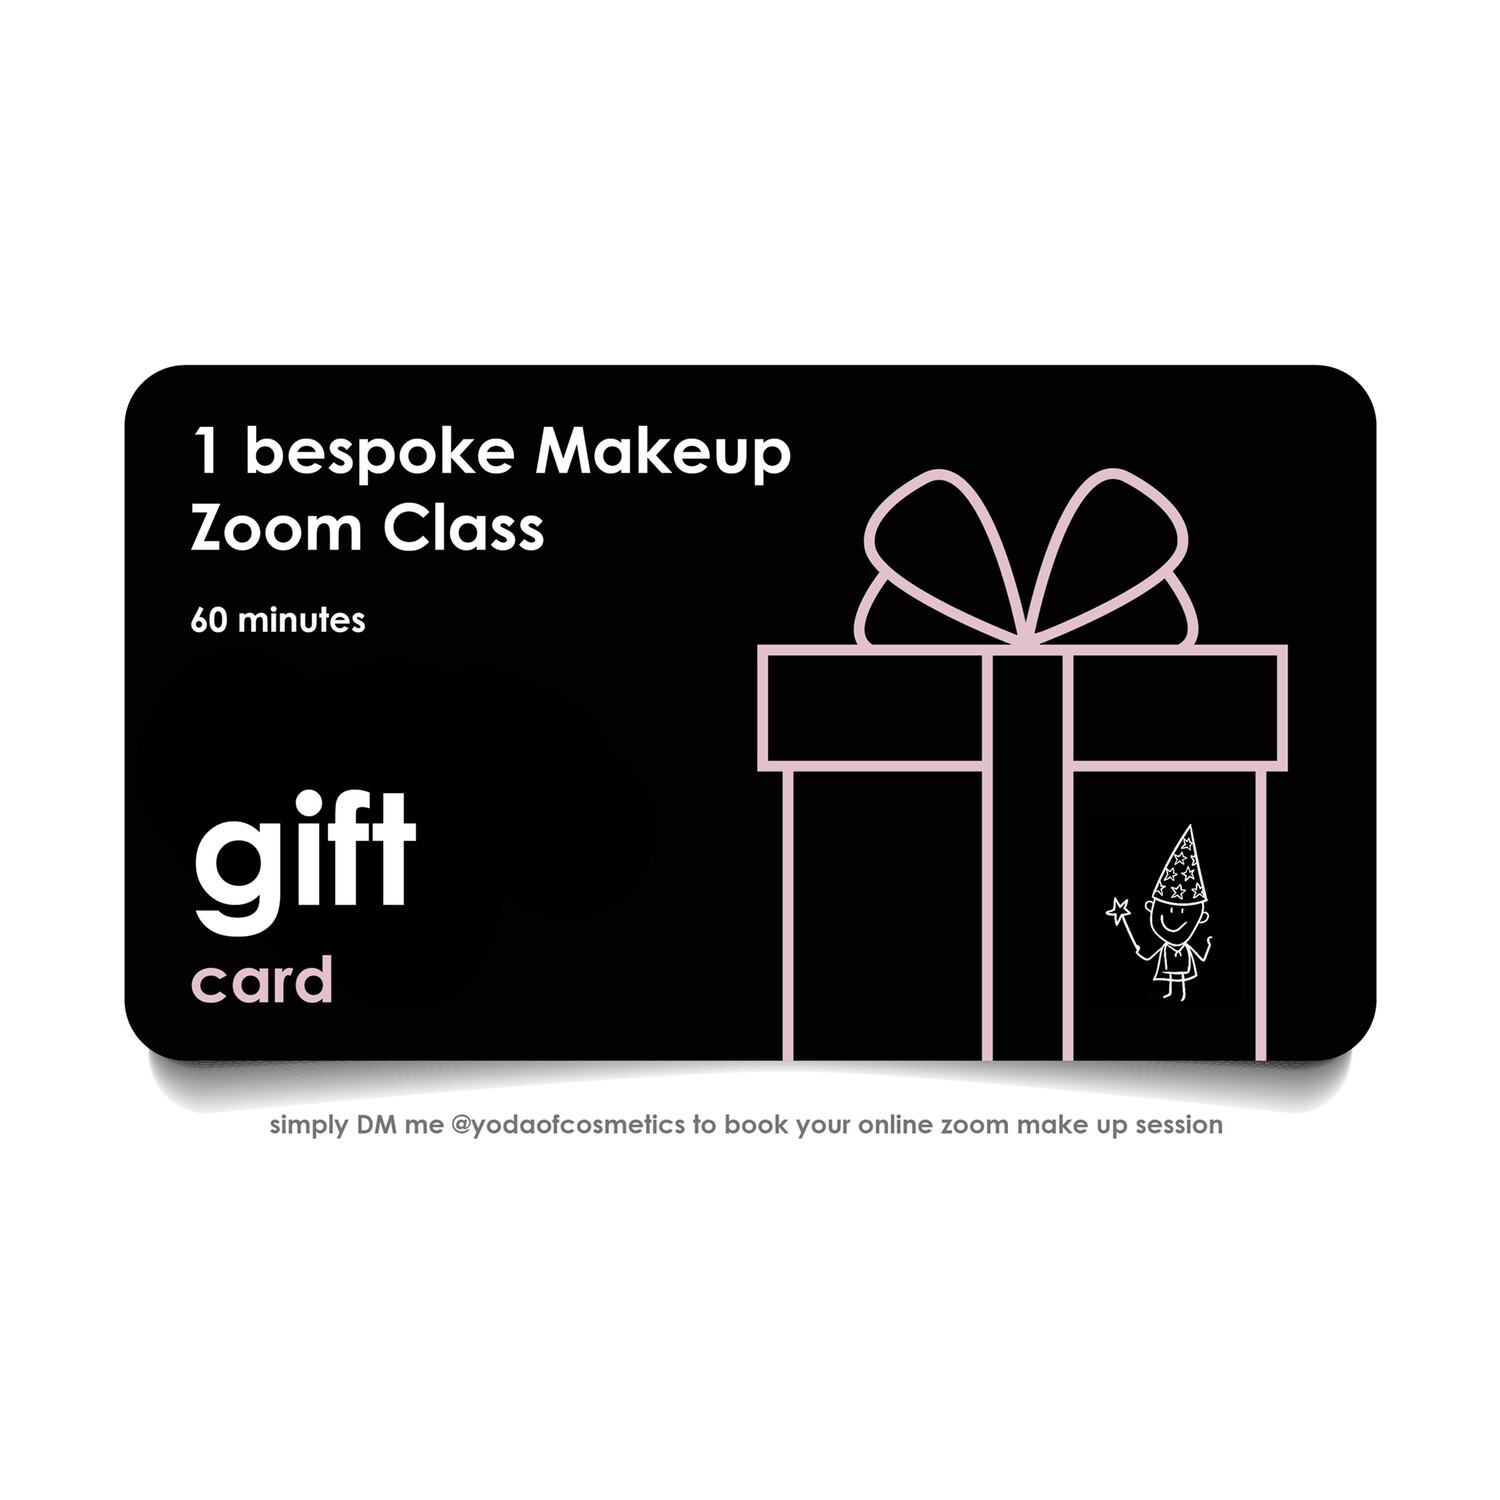 PDF printable E- Gift Card 1 x bespoke Makeup Zoom class - the purchaser will receive a printable PDF this is not a physical gift card.